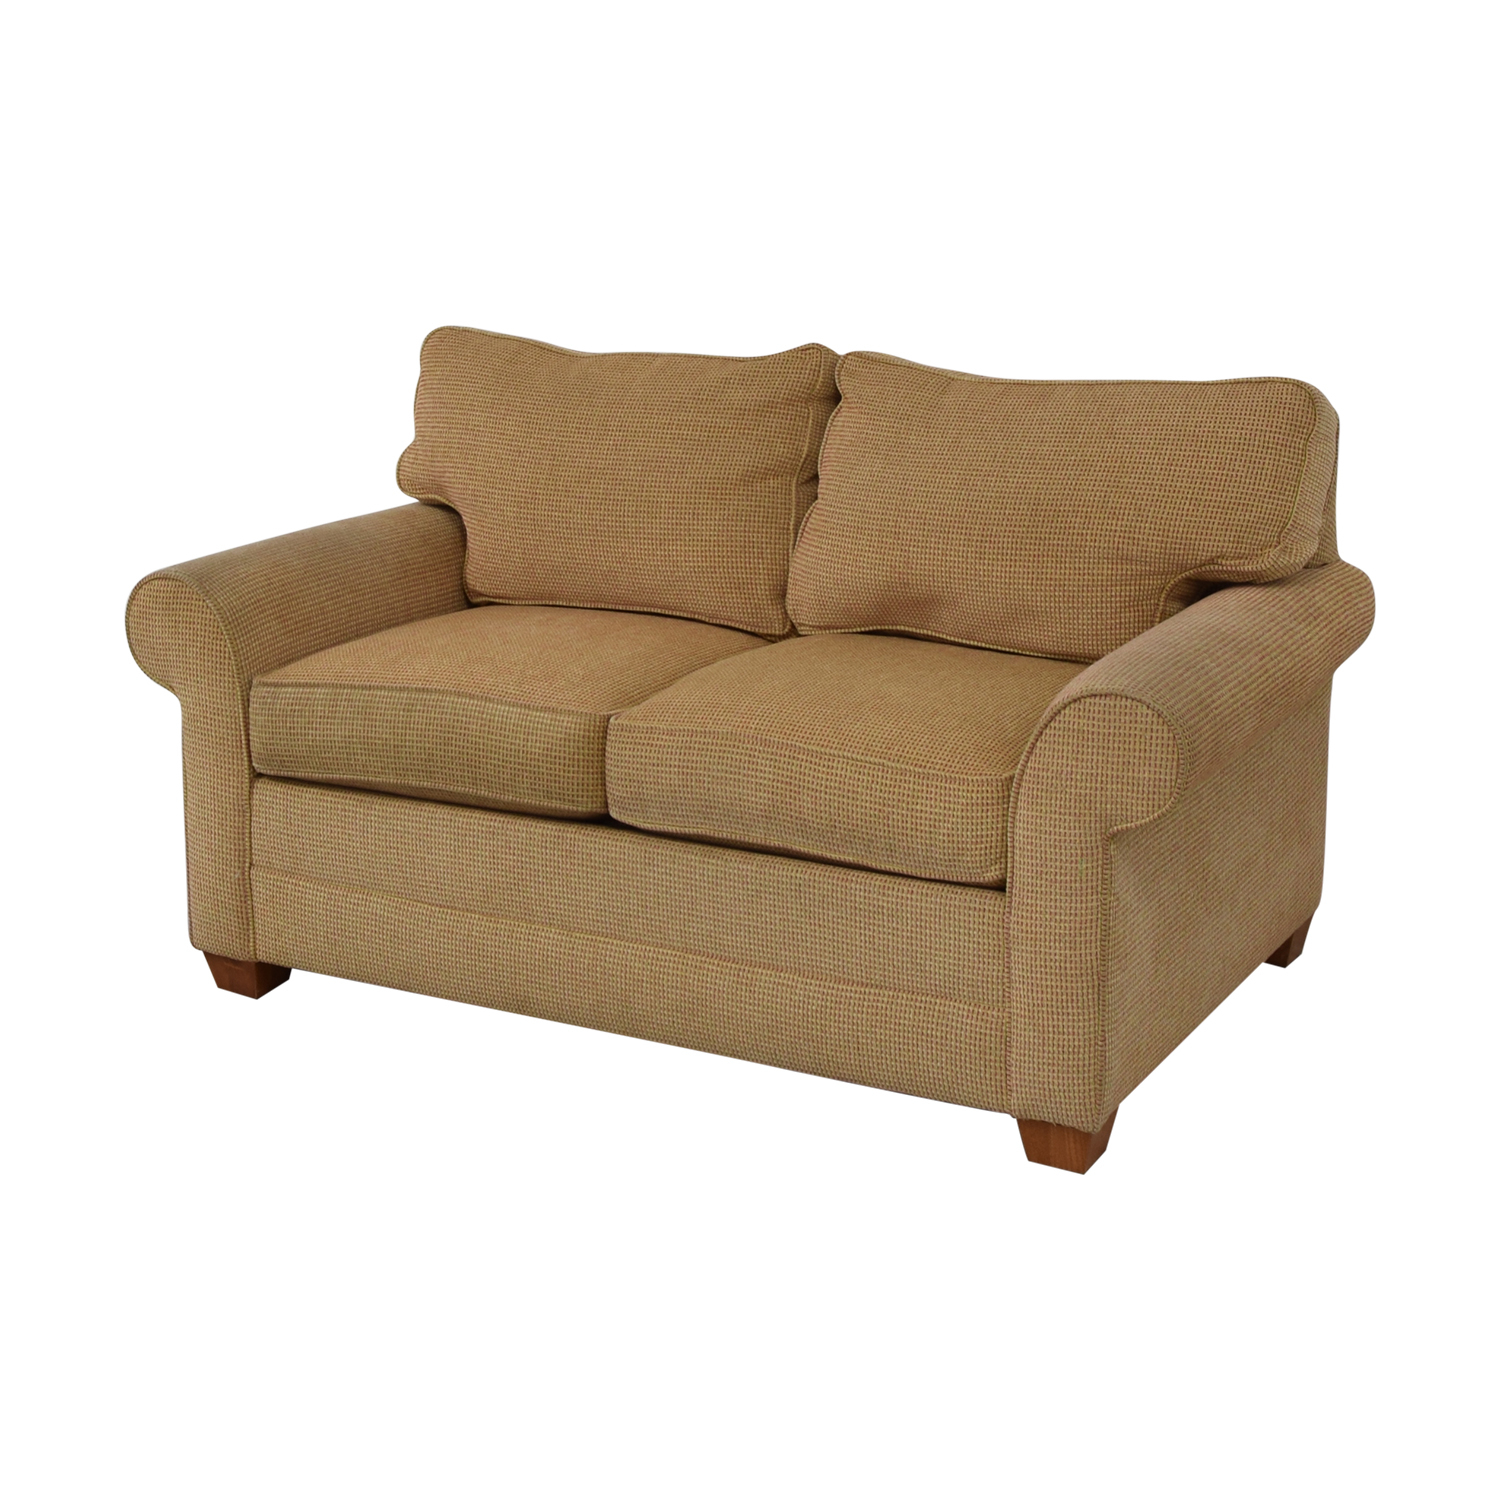 79% Off – Ethan Allen Ethan Allen Loveseat Sofa / Sofas With Regard To Ethan Allen Sofas And Chairs (View 3 of 15)